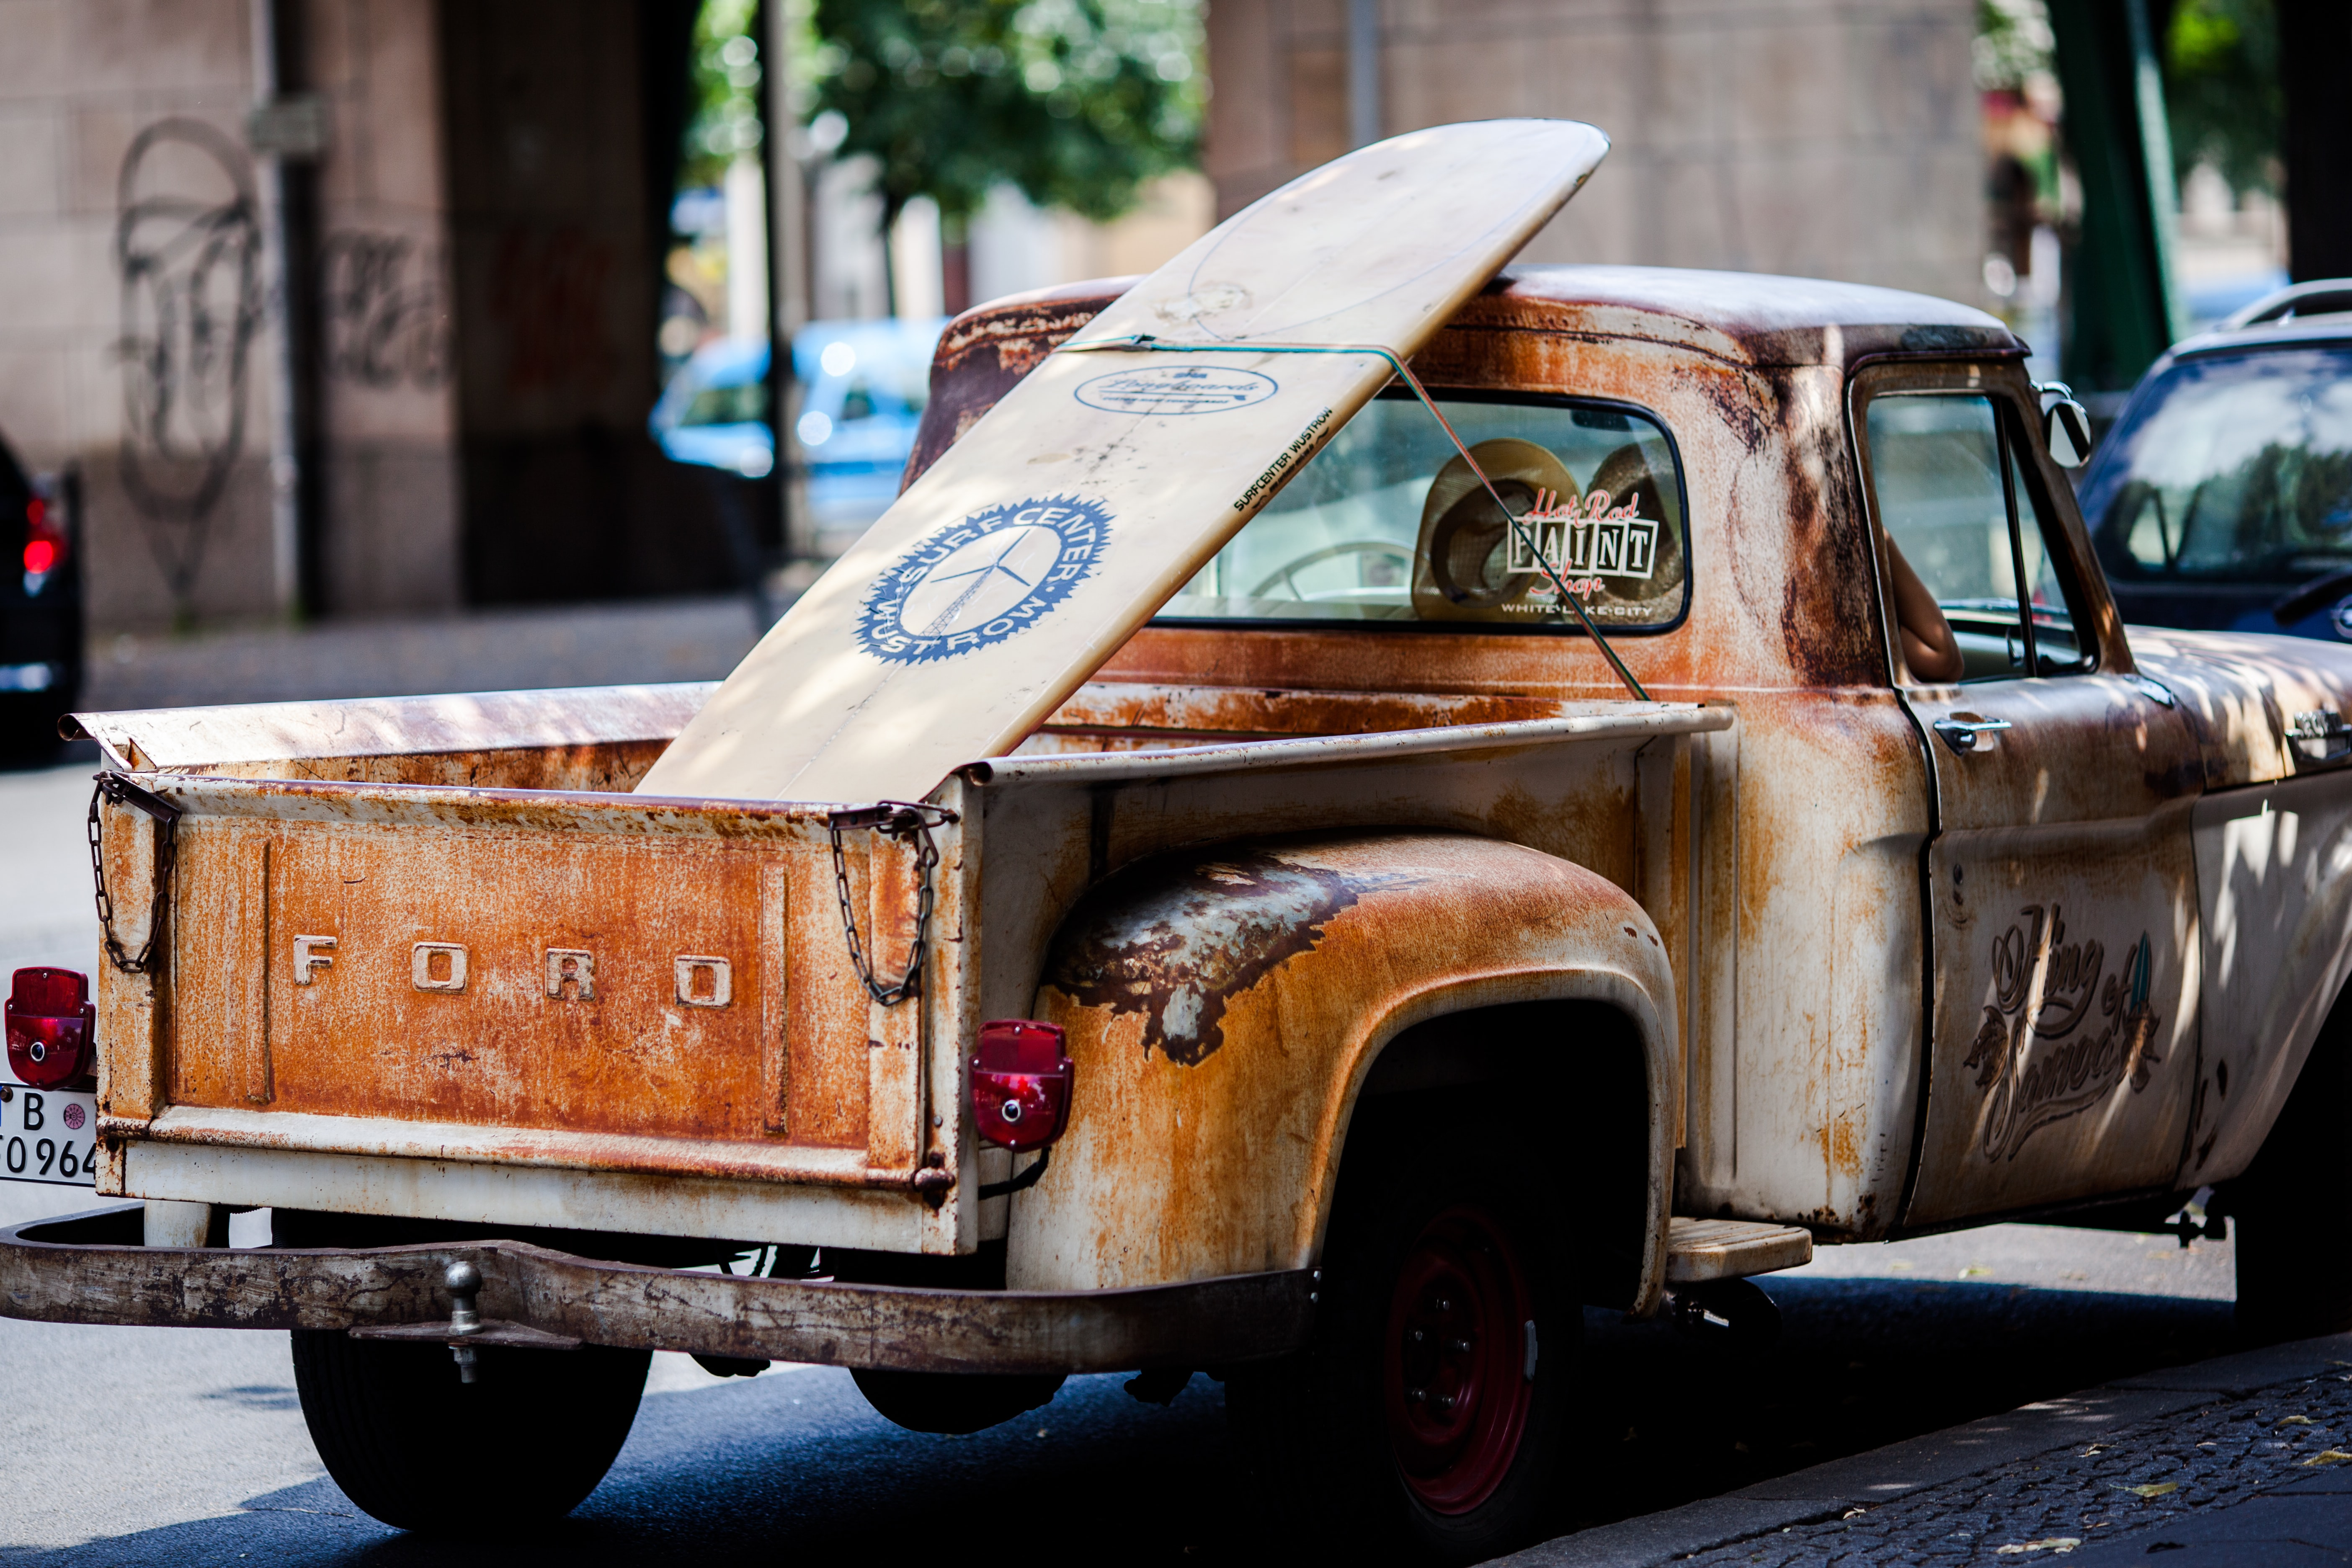 A rusty pick-up truck with a white surfboard in the cargo area